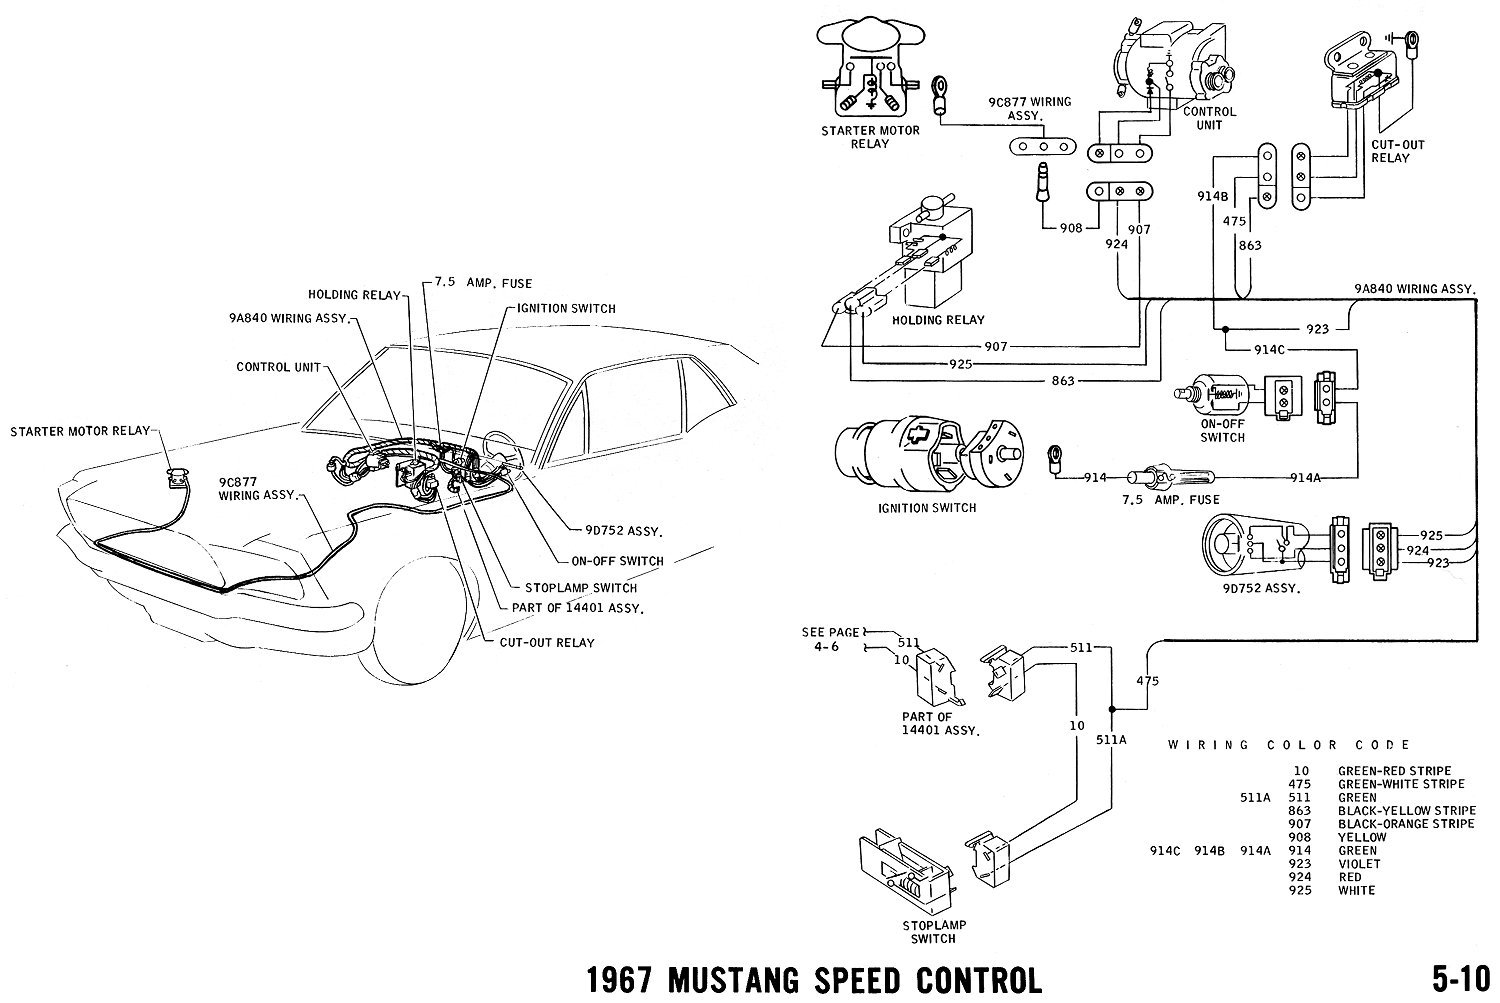 67speed 1967 mustang wiring and vacuum diagrams average joe restoration 68 Mustang Wiring Diagram at webbmarketing.co